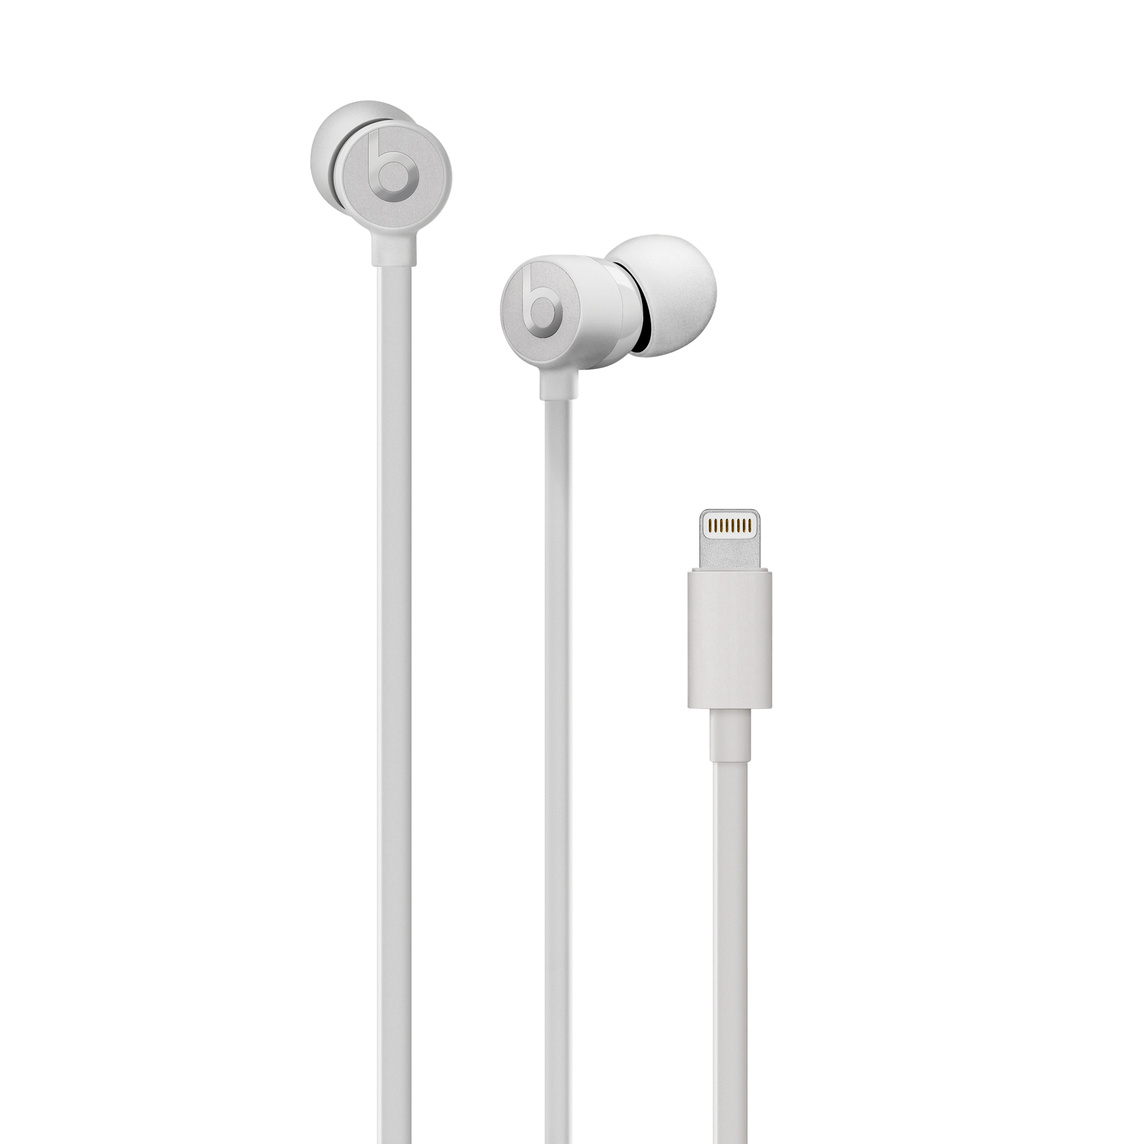 buy popular 468c3 e70e9 urBeats3 Earphones with Lightning Connector - Satin Silver